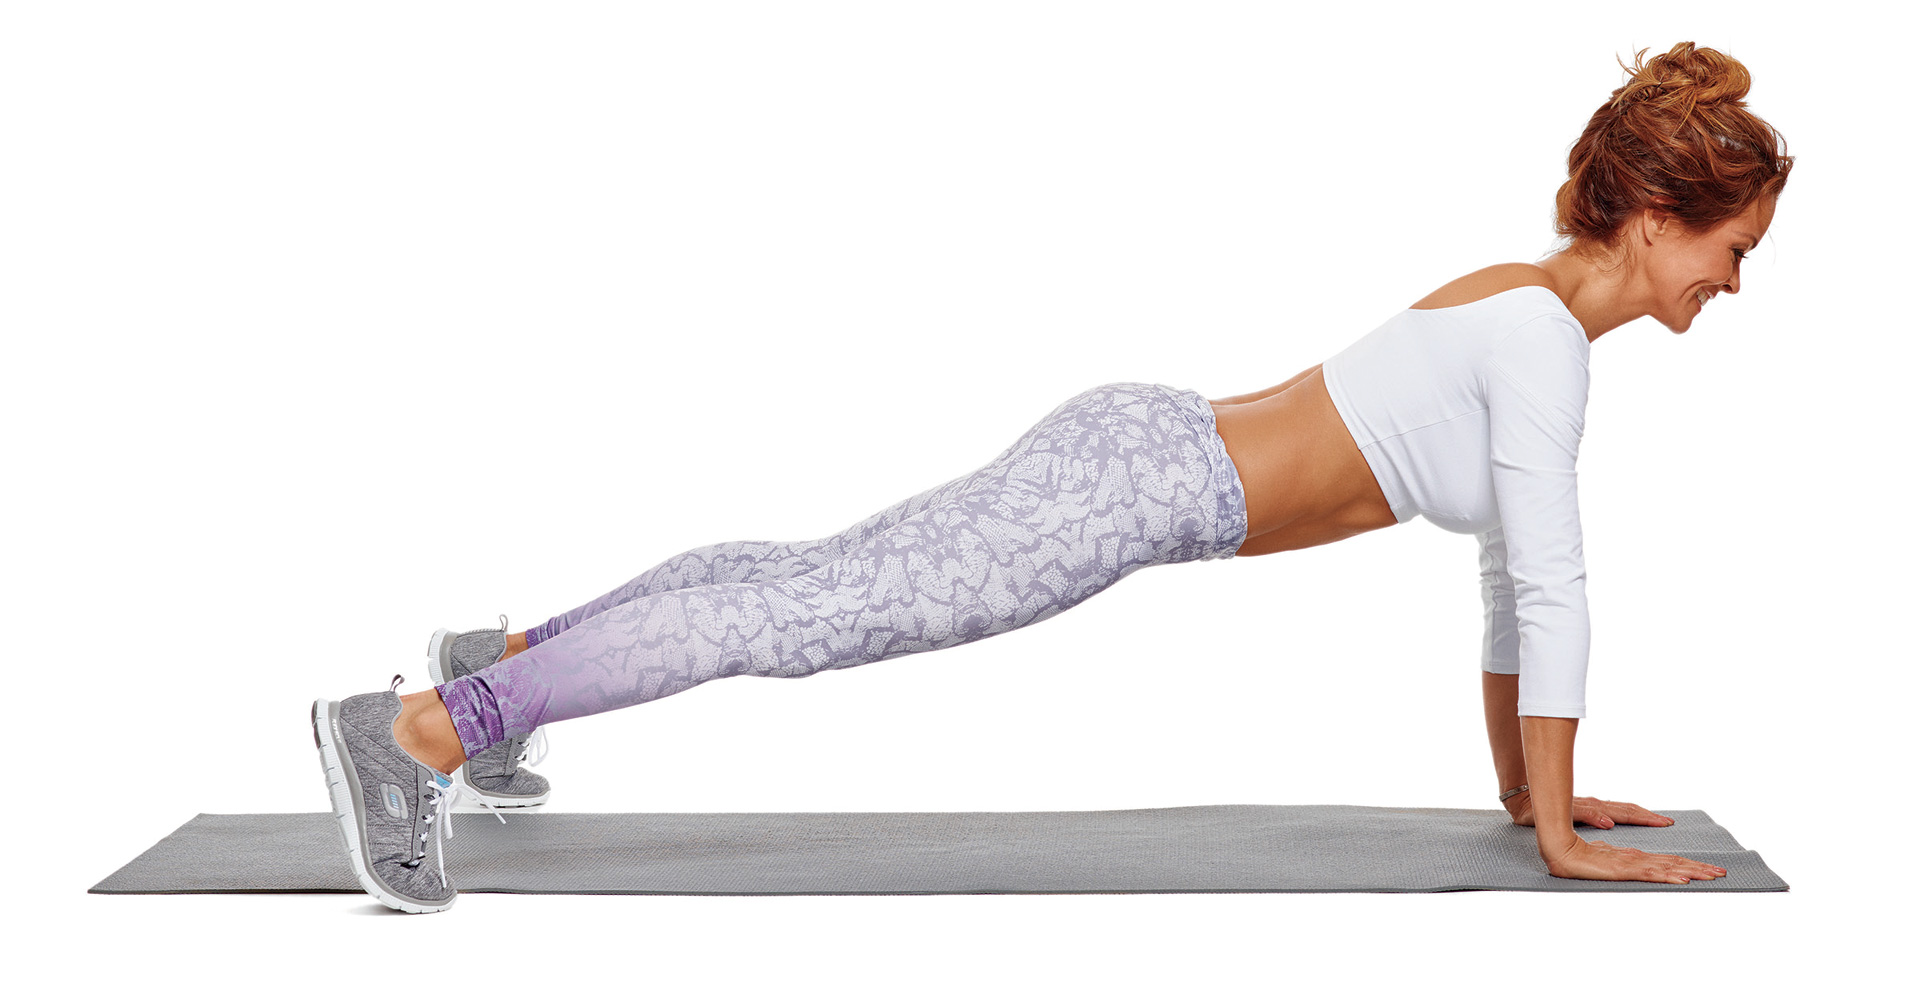 Tap-out plank